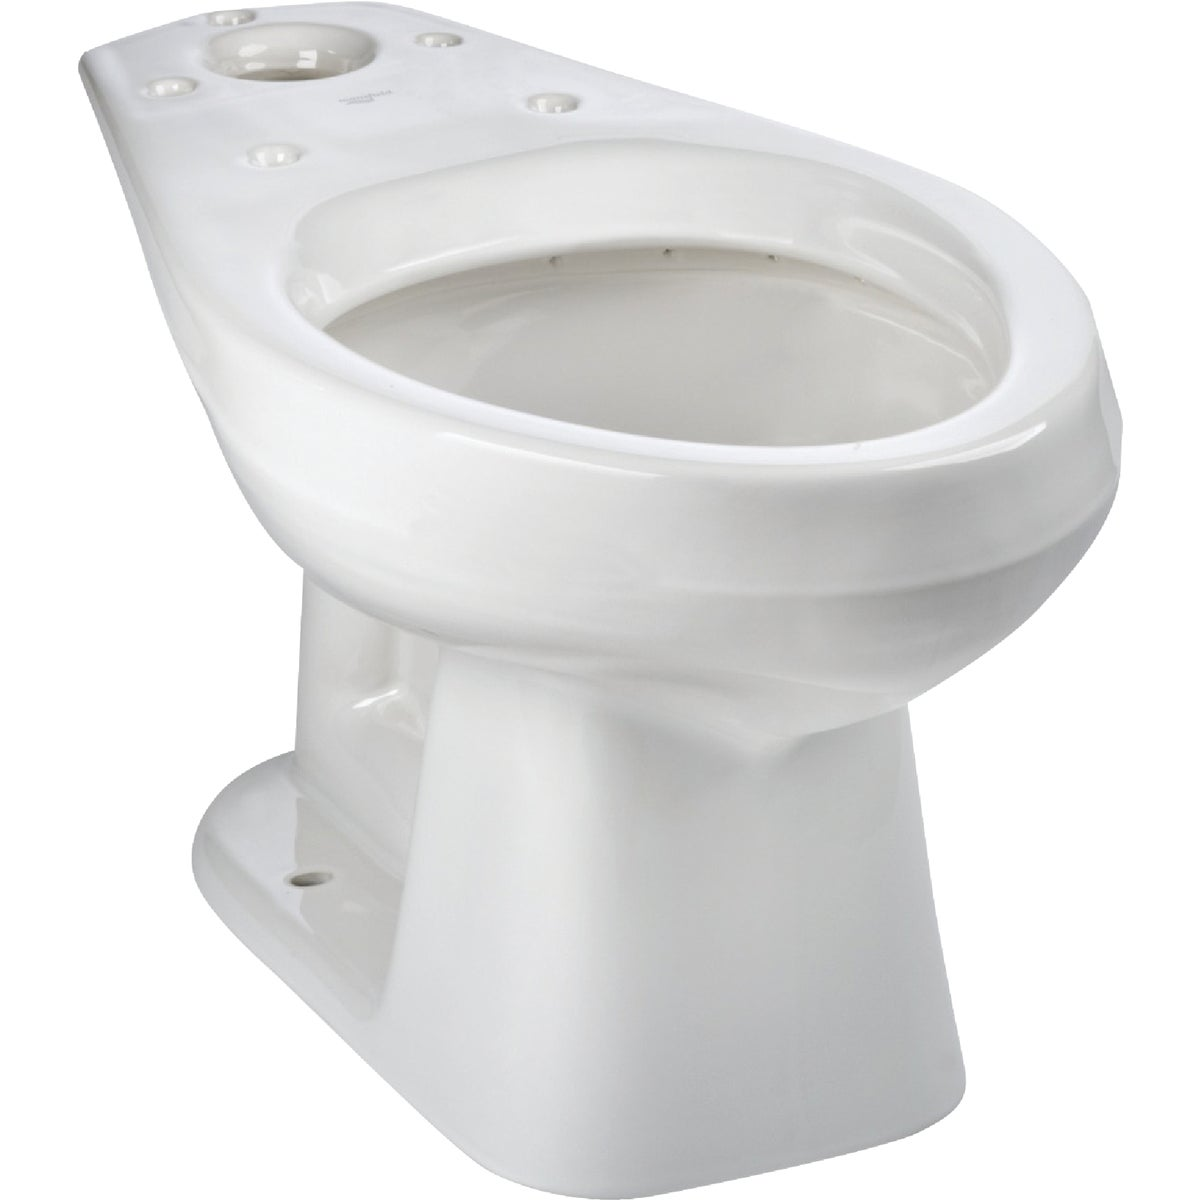 WHITE ELONG TOILET BOWL - 135010007 by Mansfield Plumbing